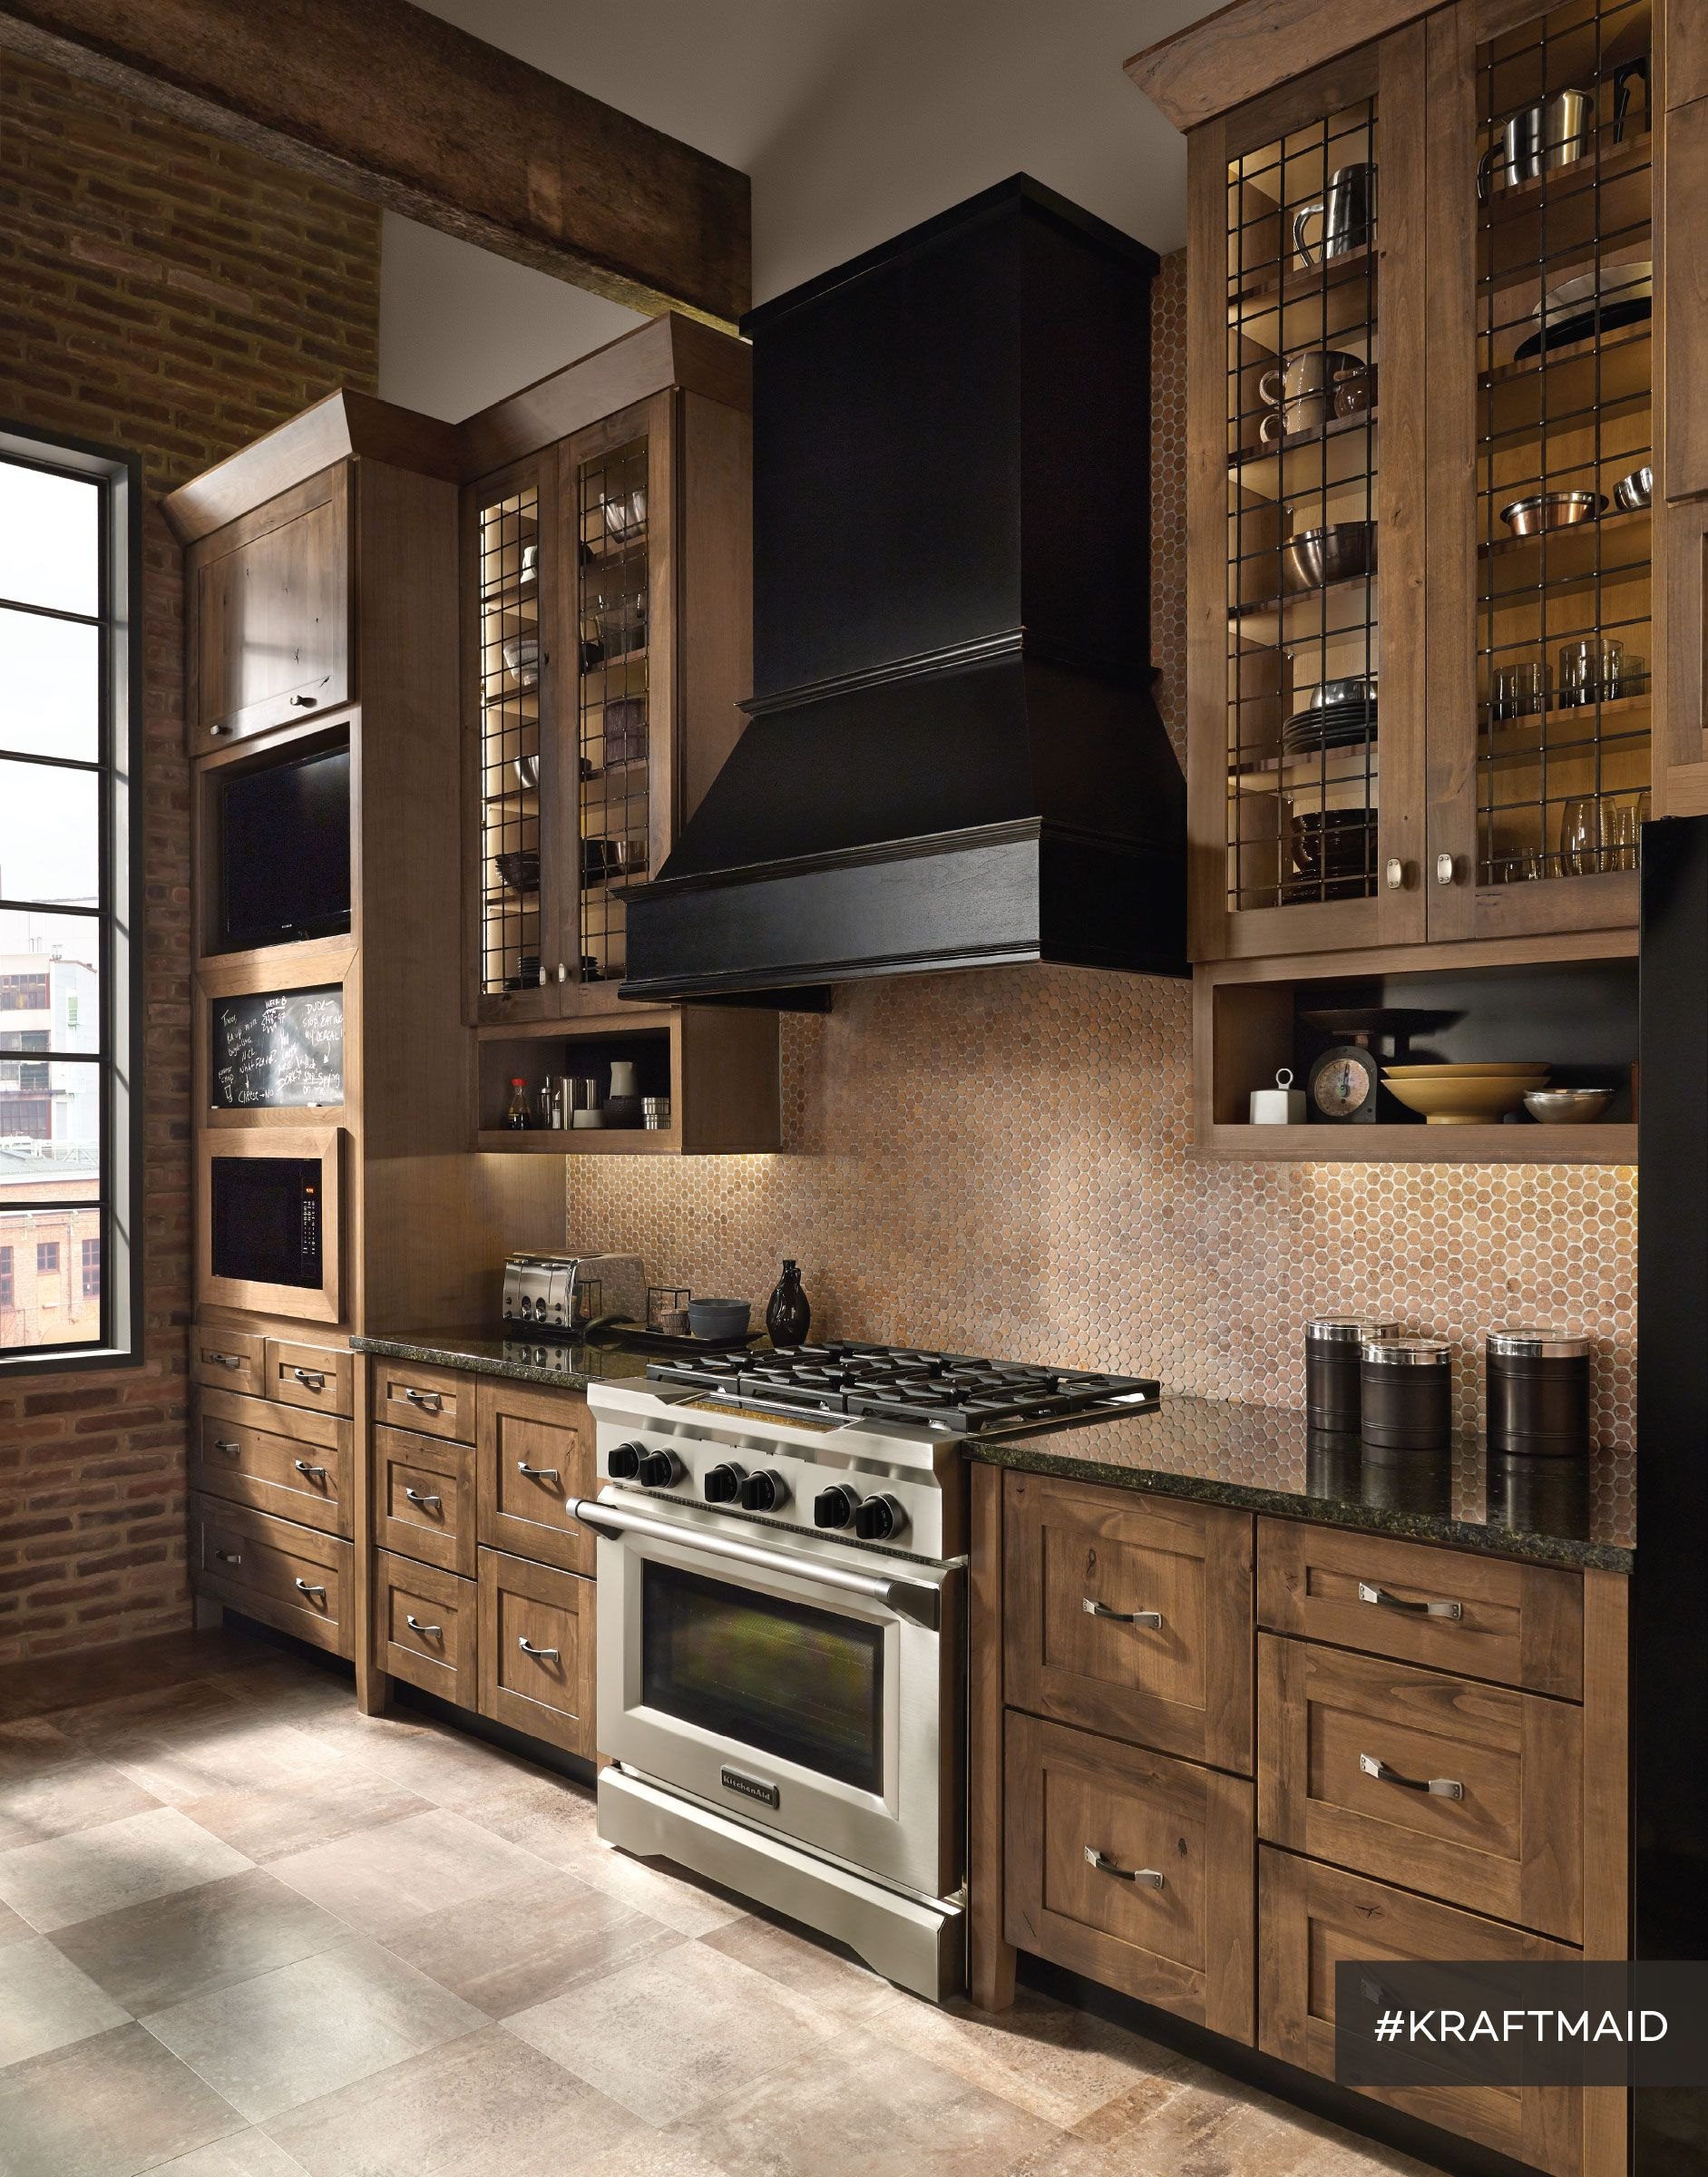 Create A Kitchen That S Cool Calm And Functional: How To Make An Around-the-clock Kitchen Where Everyone's